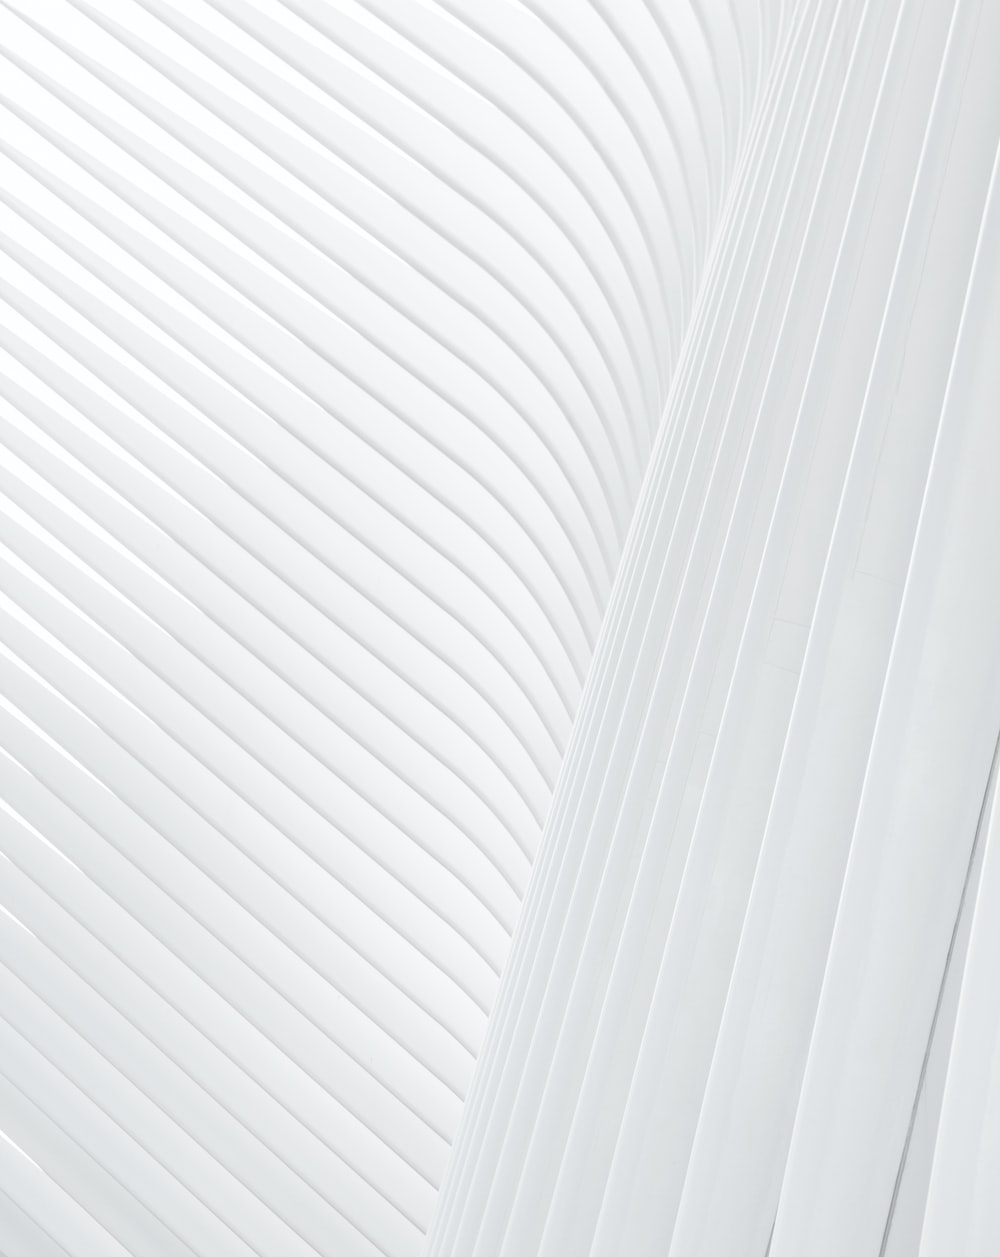 A white stripe pattern made up of concrete facade ribs